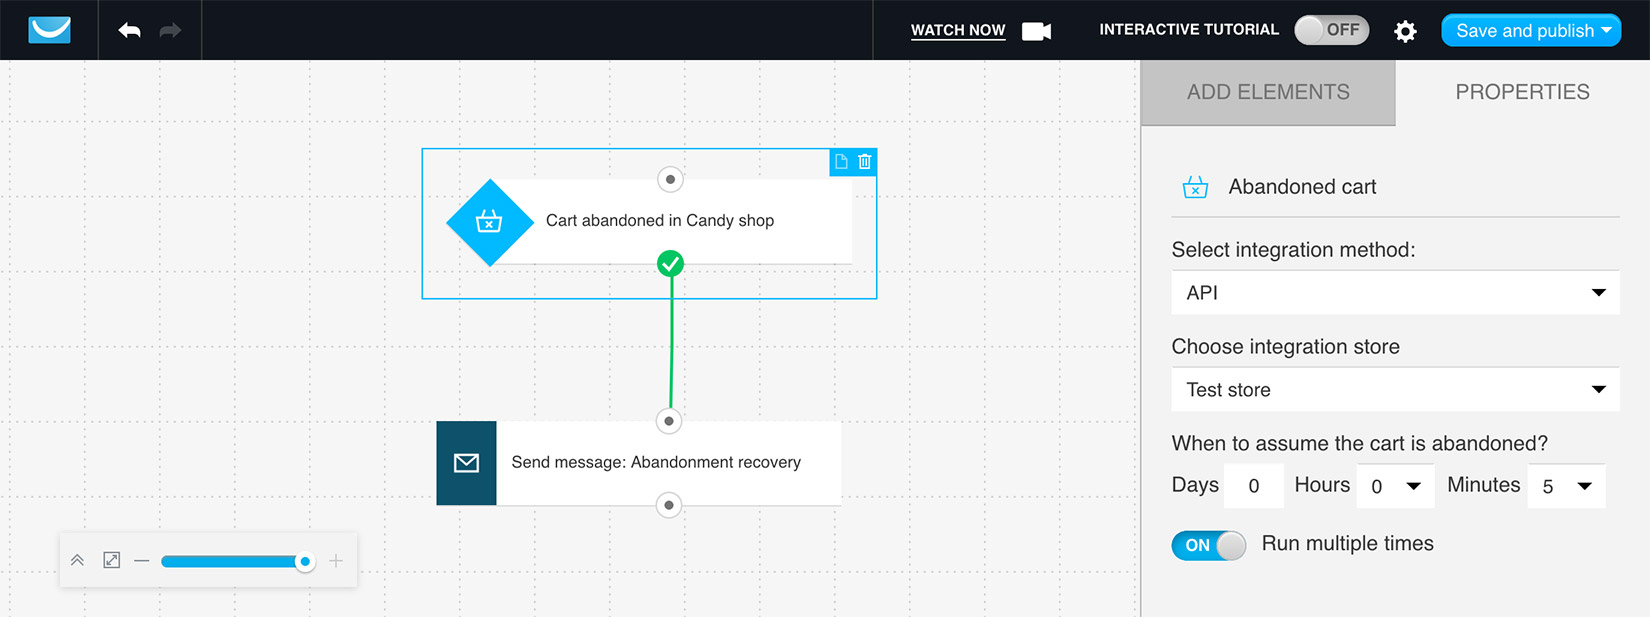 Abandoned cart recovery automation example in GetResponse